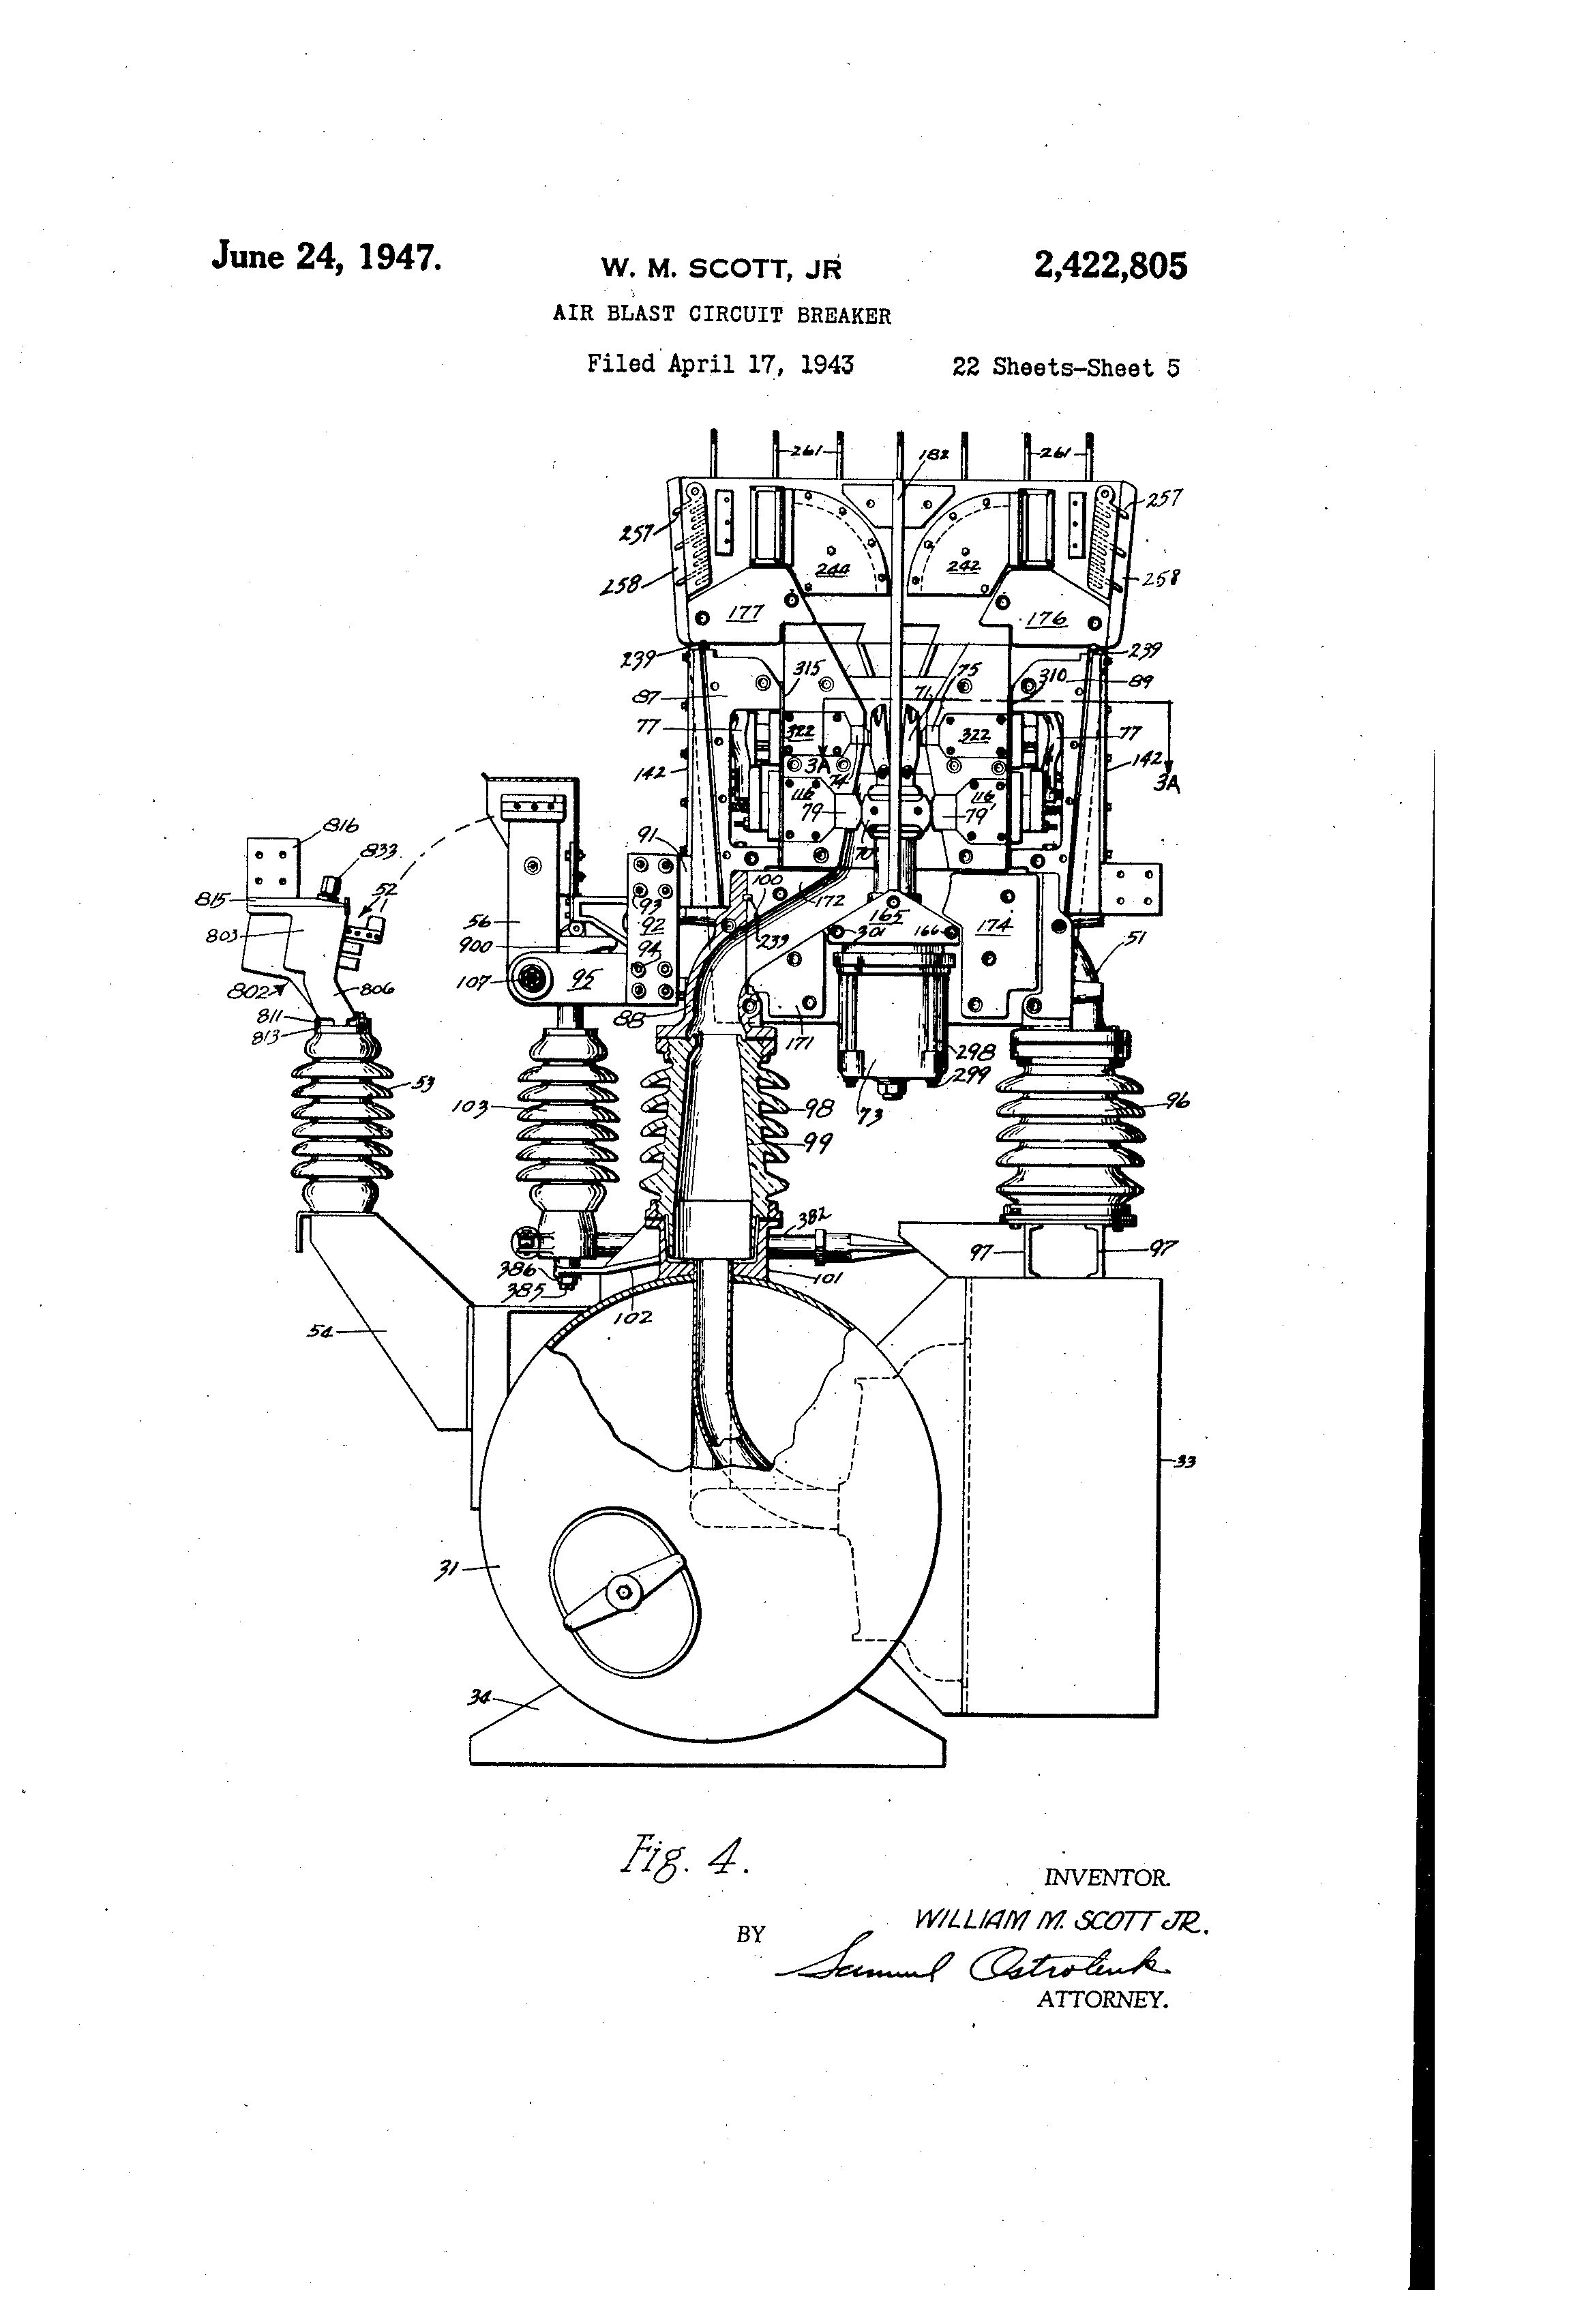 patent us2422805 - air blast circuit breaker